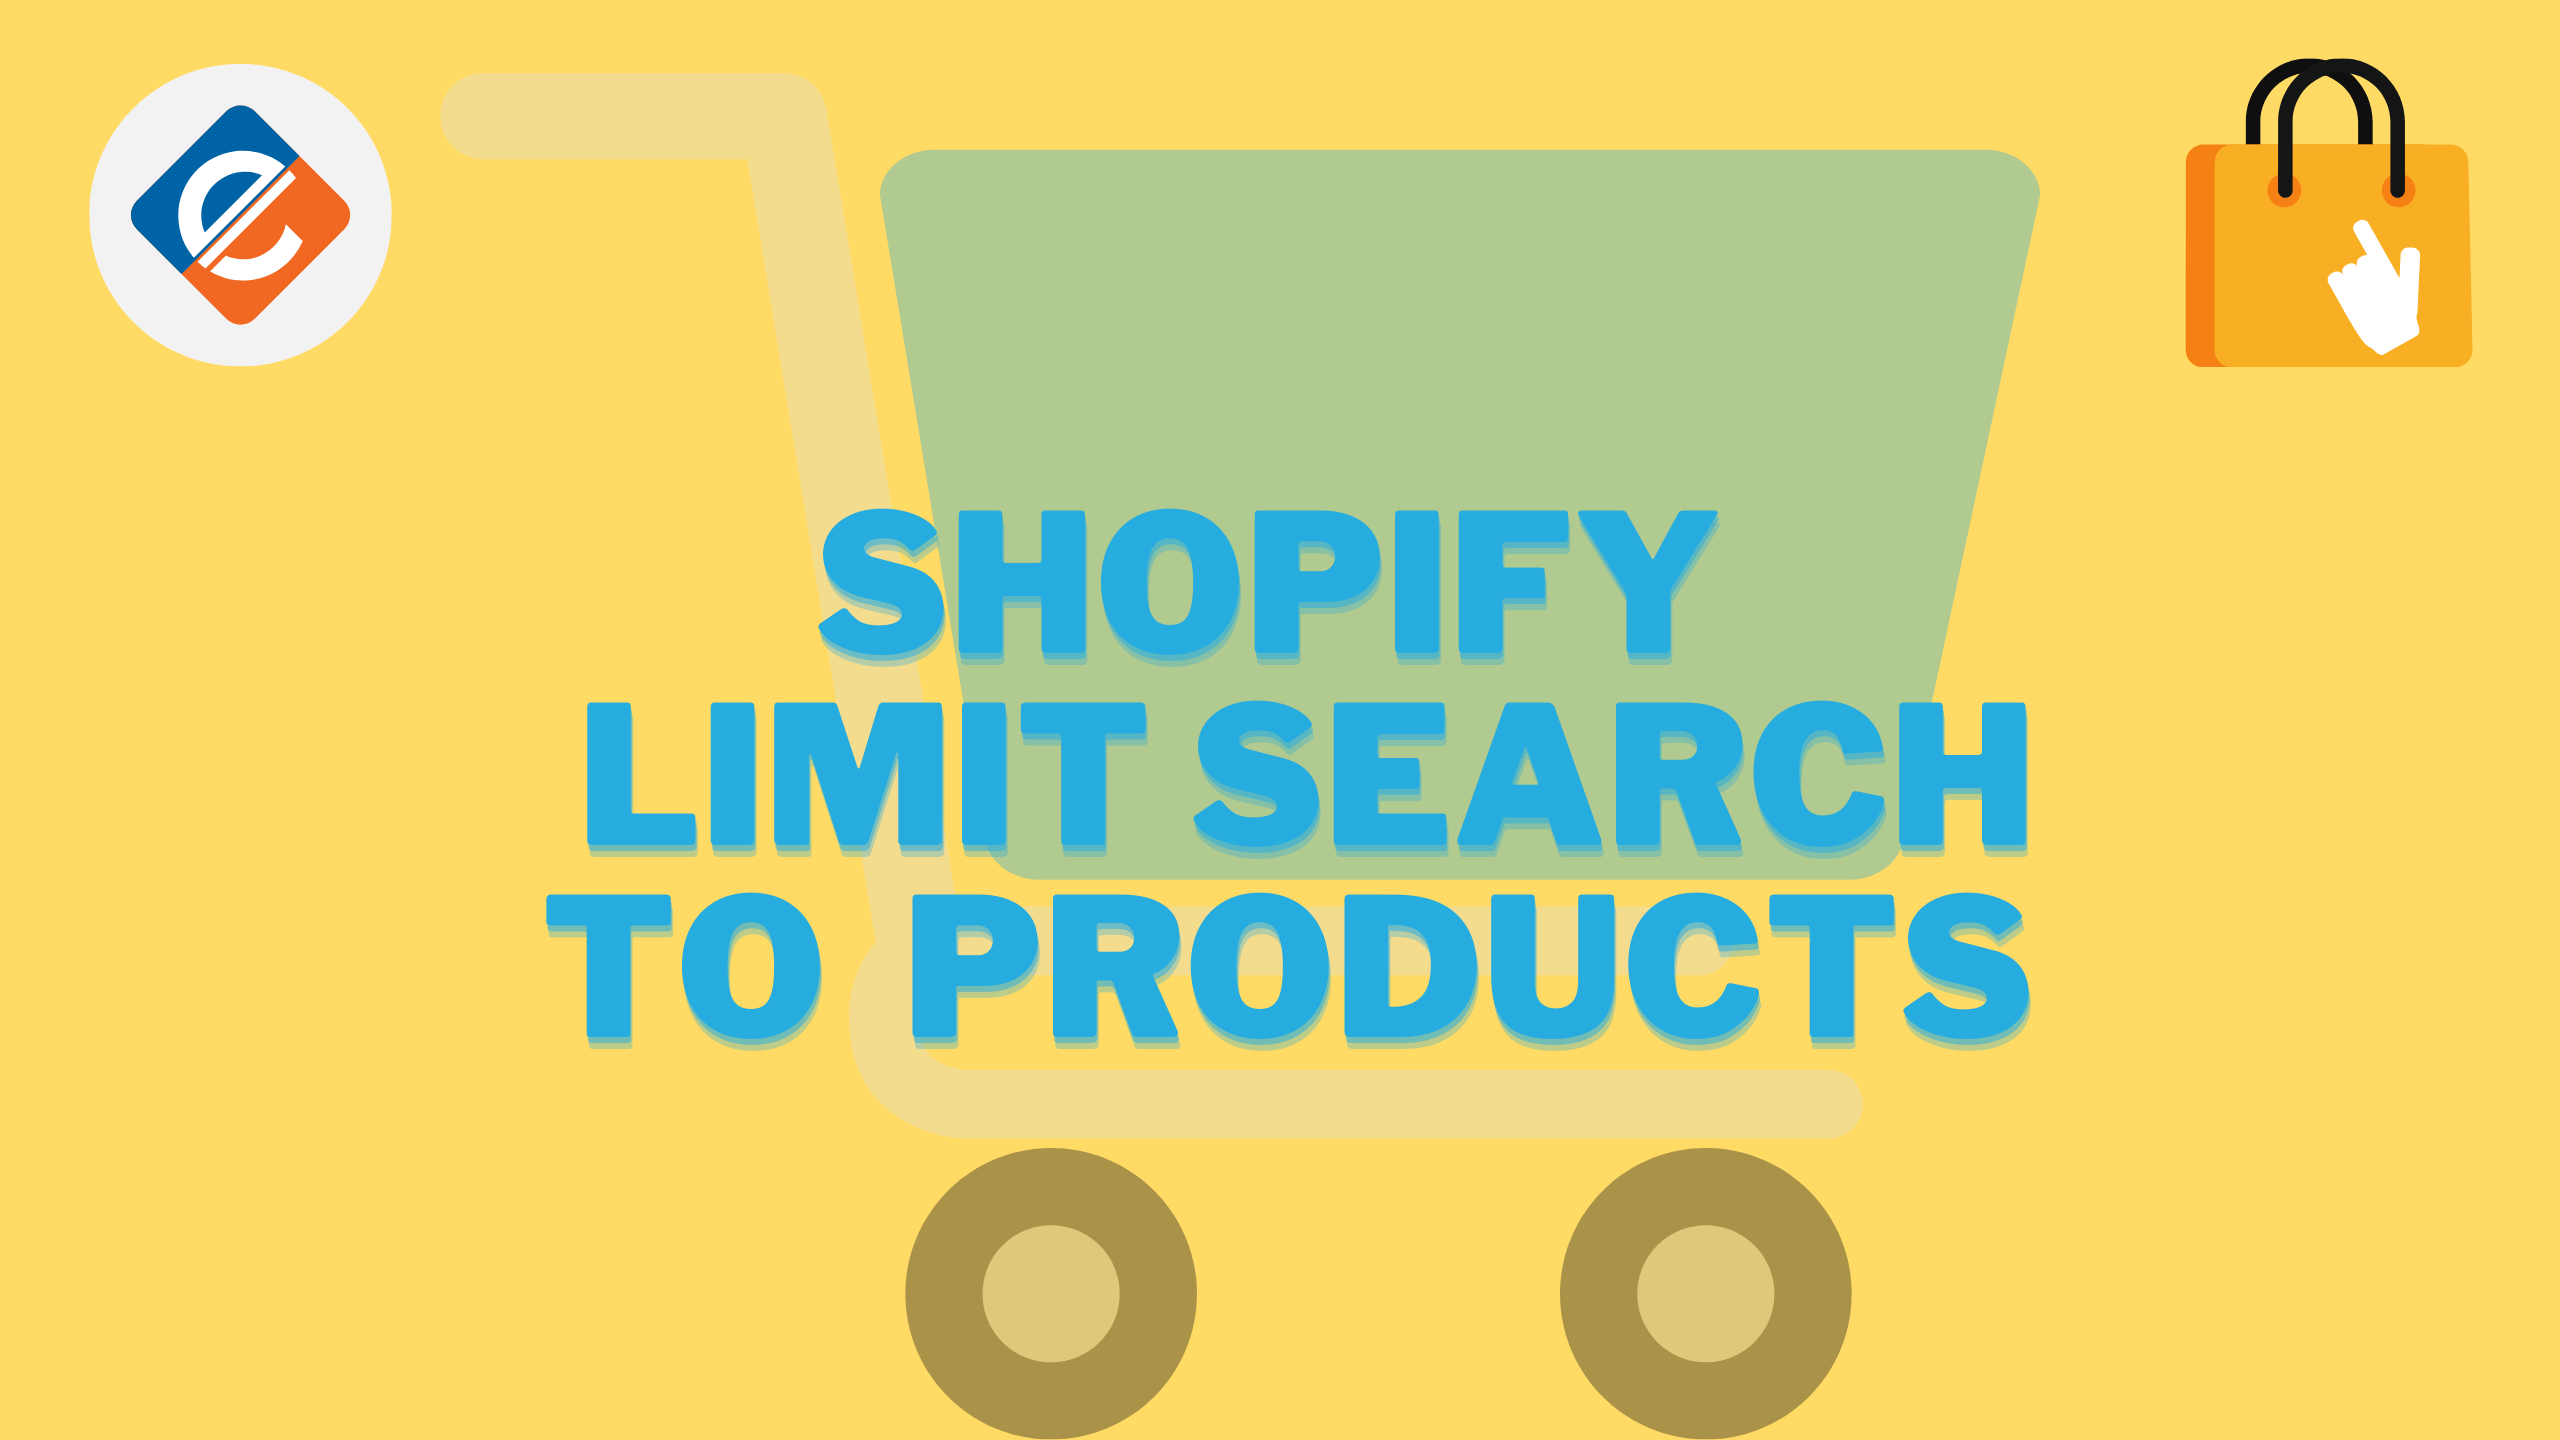 Shopify Limit Search to Products